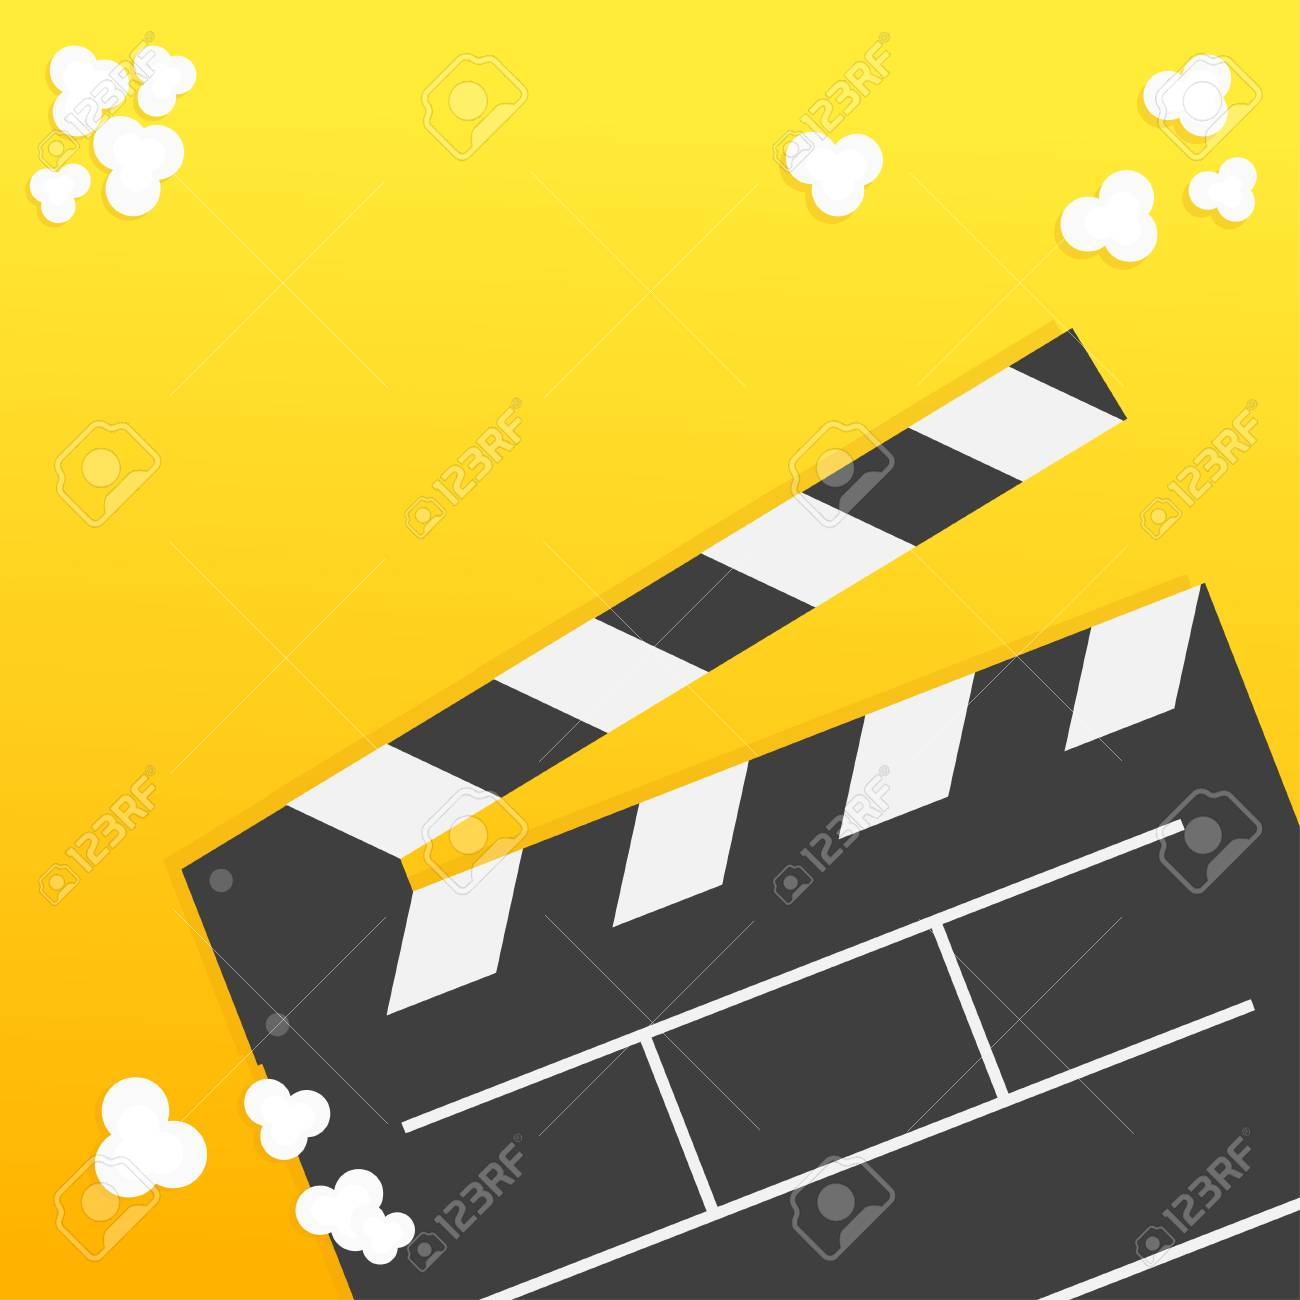 Popcorn  Open clapper board from top down perspective  Air view